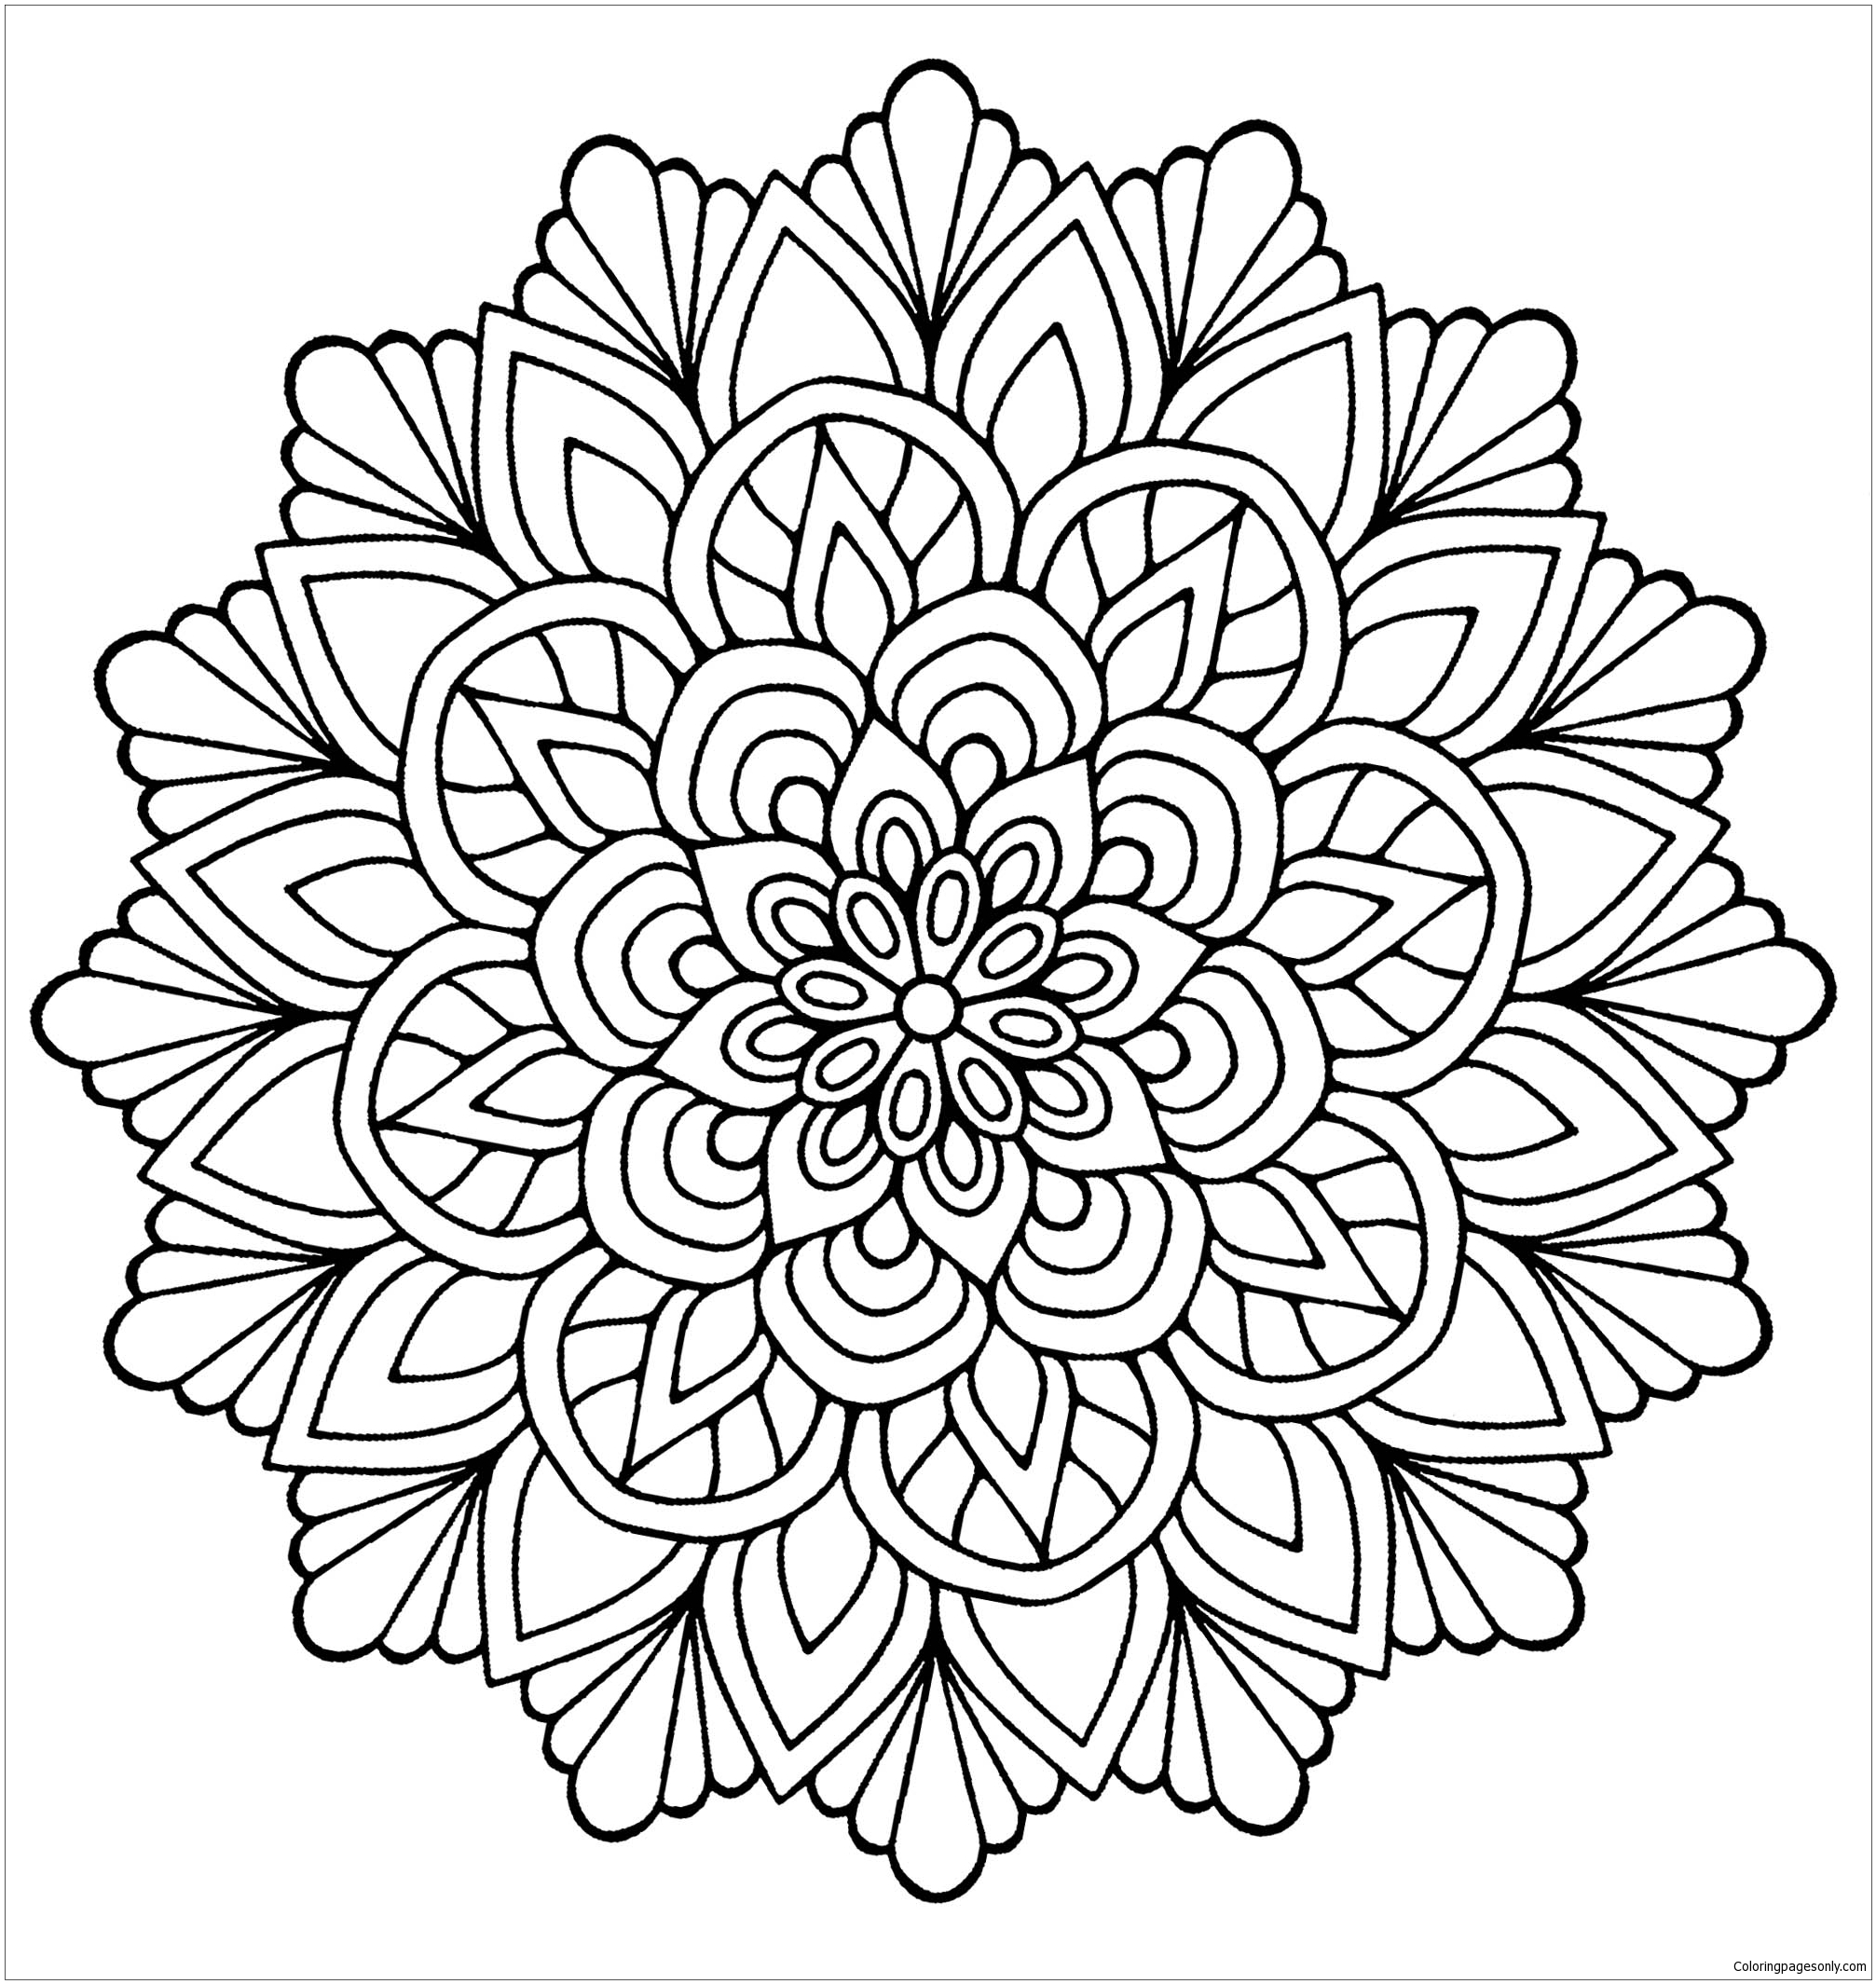 Flower coloring pages | Crafts and Worksheets for Preschool ... | 2129x2013